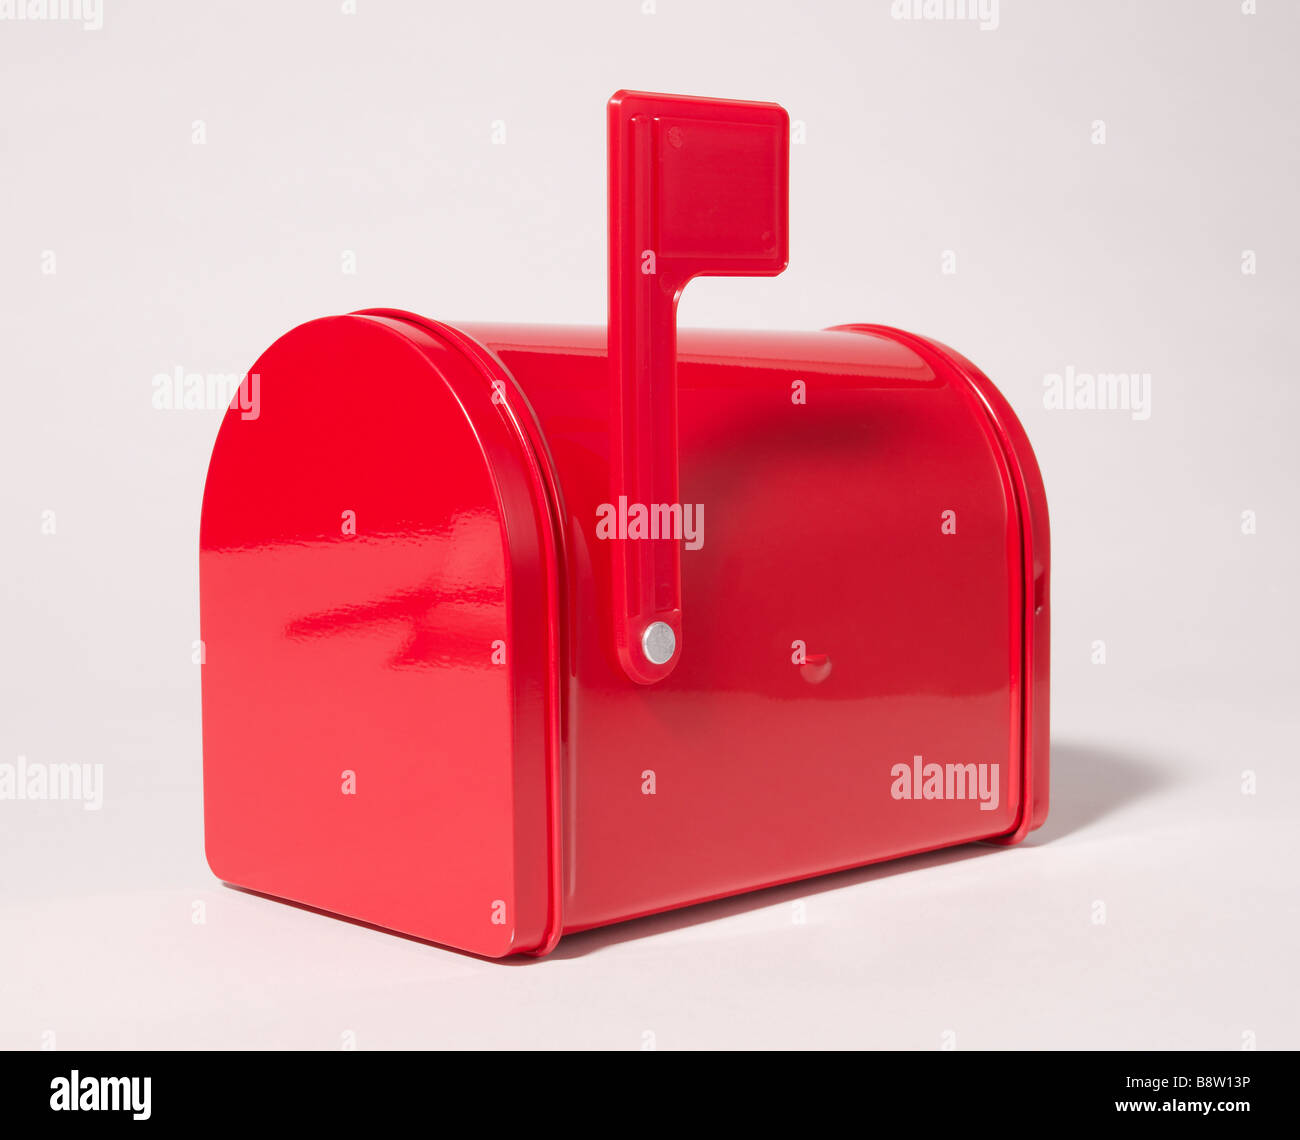 Red mailbox closed - Stock Image